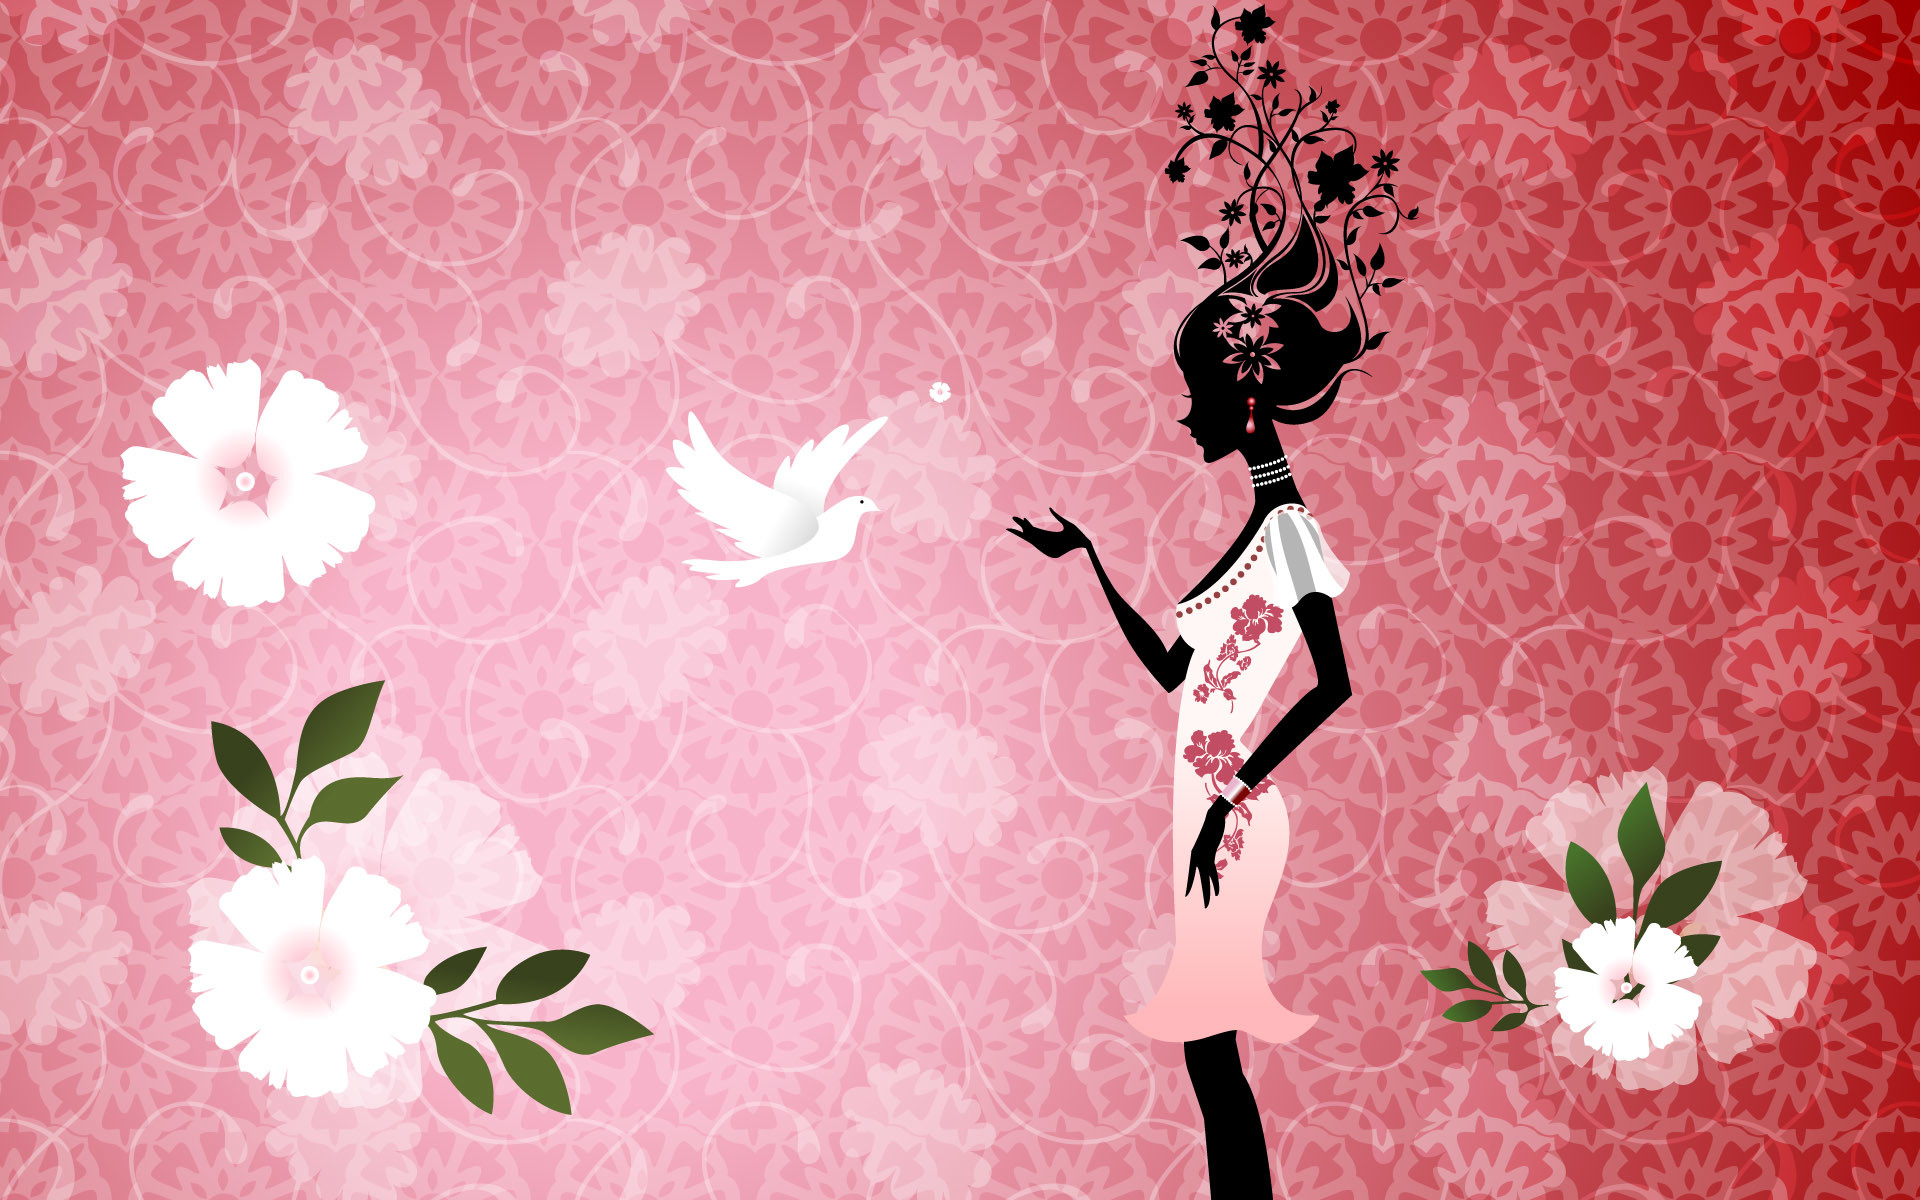 1920x1200 Girly Backgrounds for Desktop HD wallpaper background